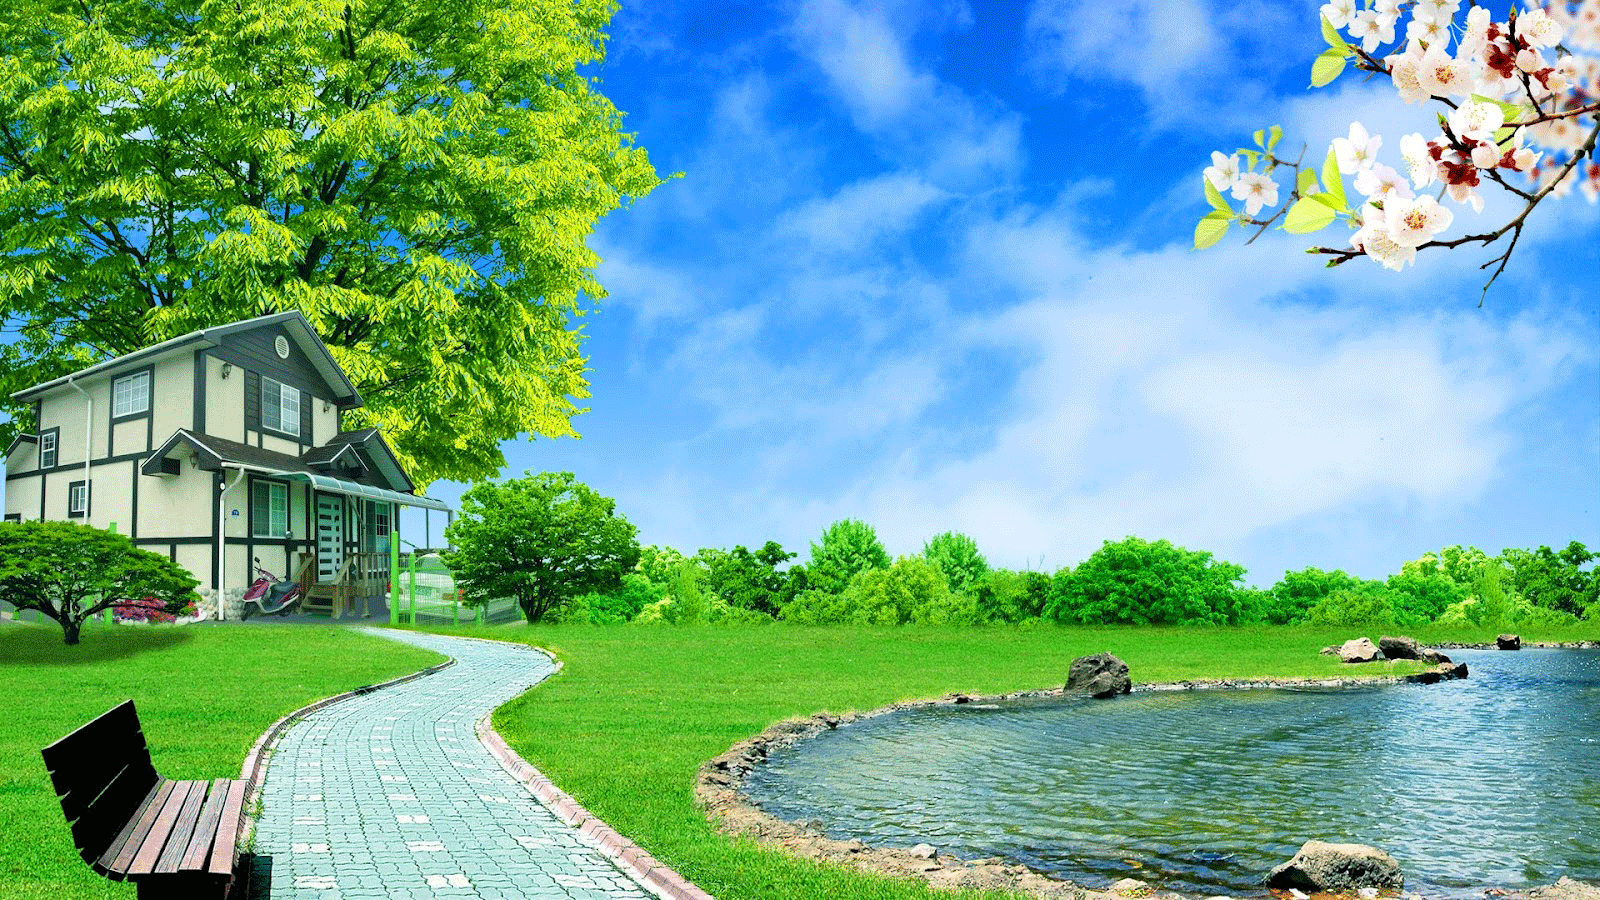 Hd Png For Pc Of Nature Free Hd For Pc Of Naturepng